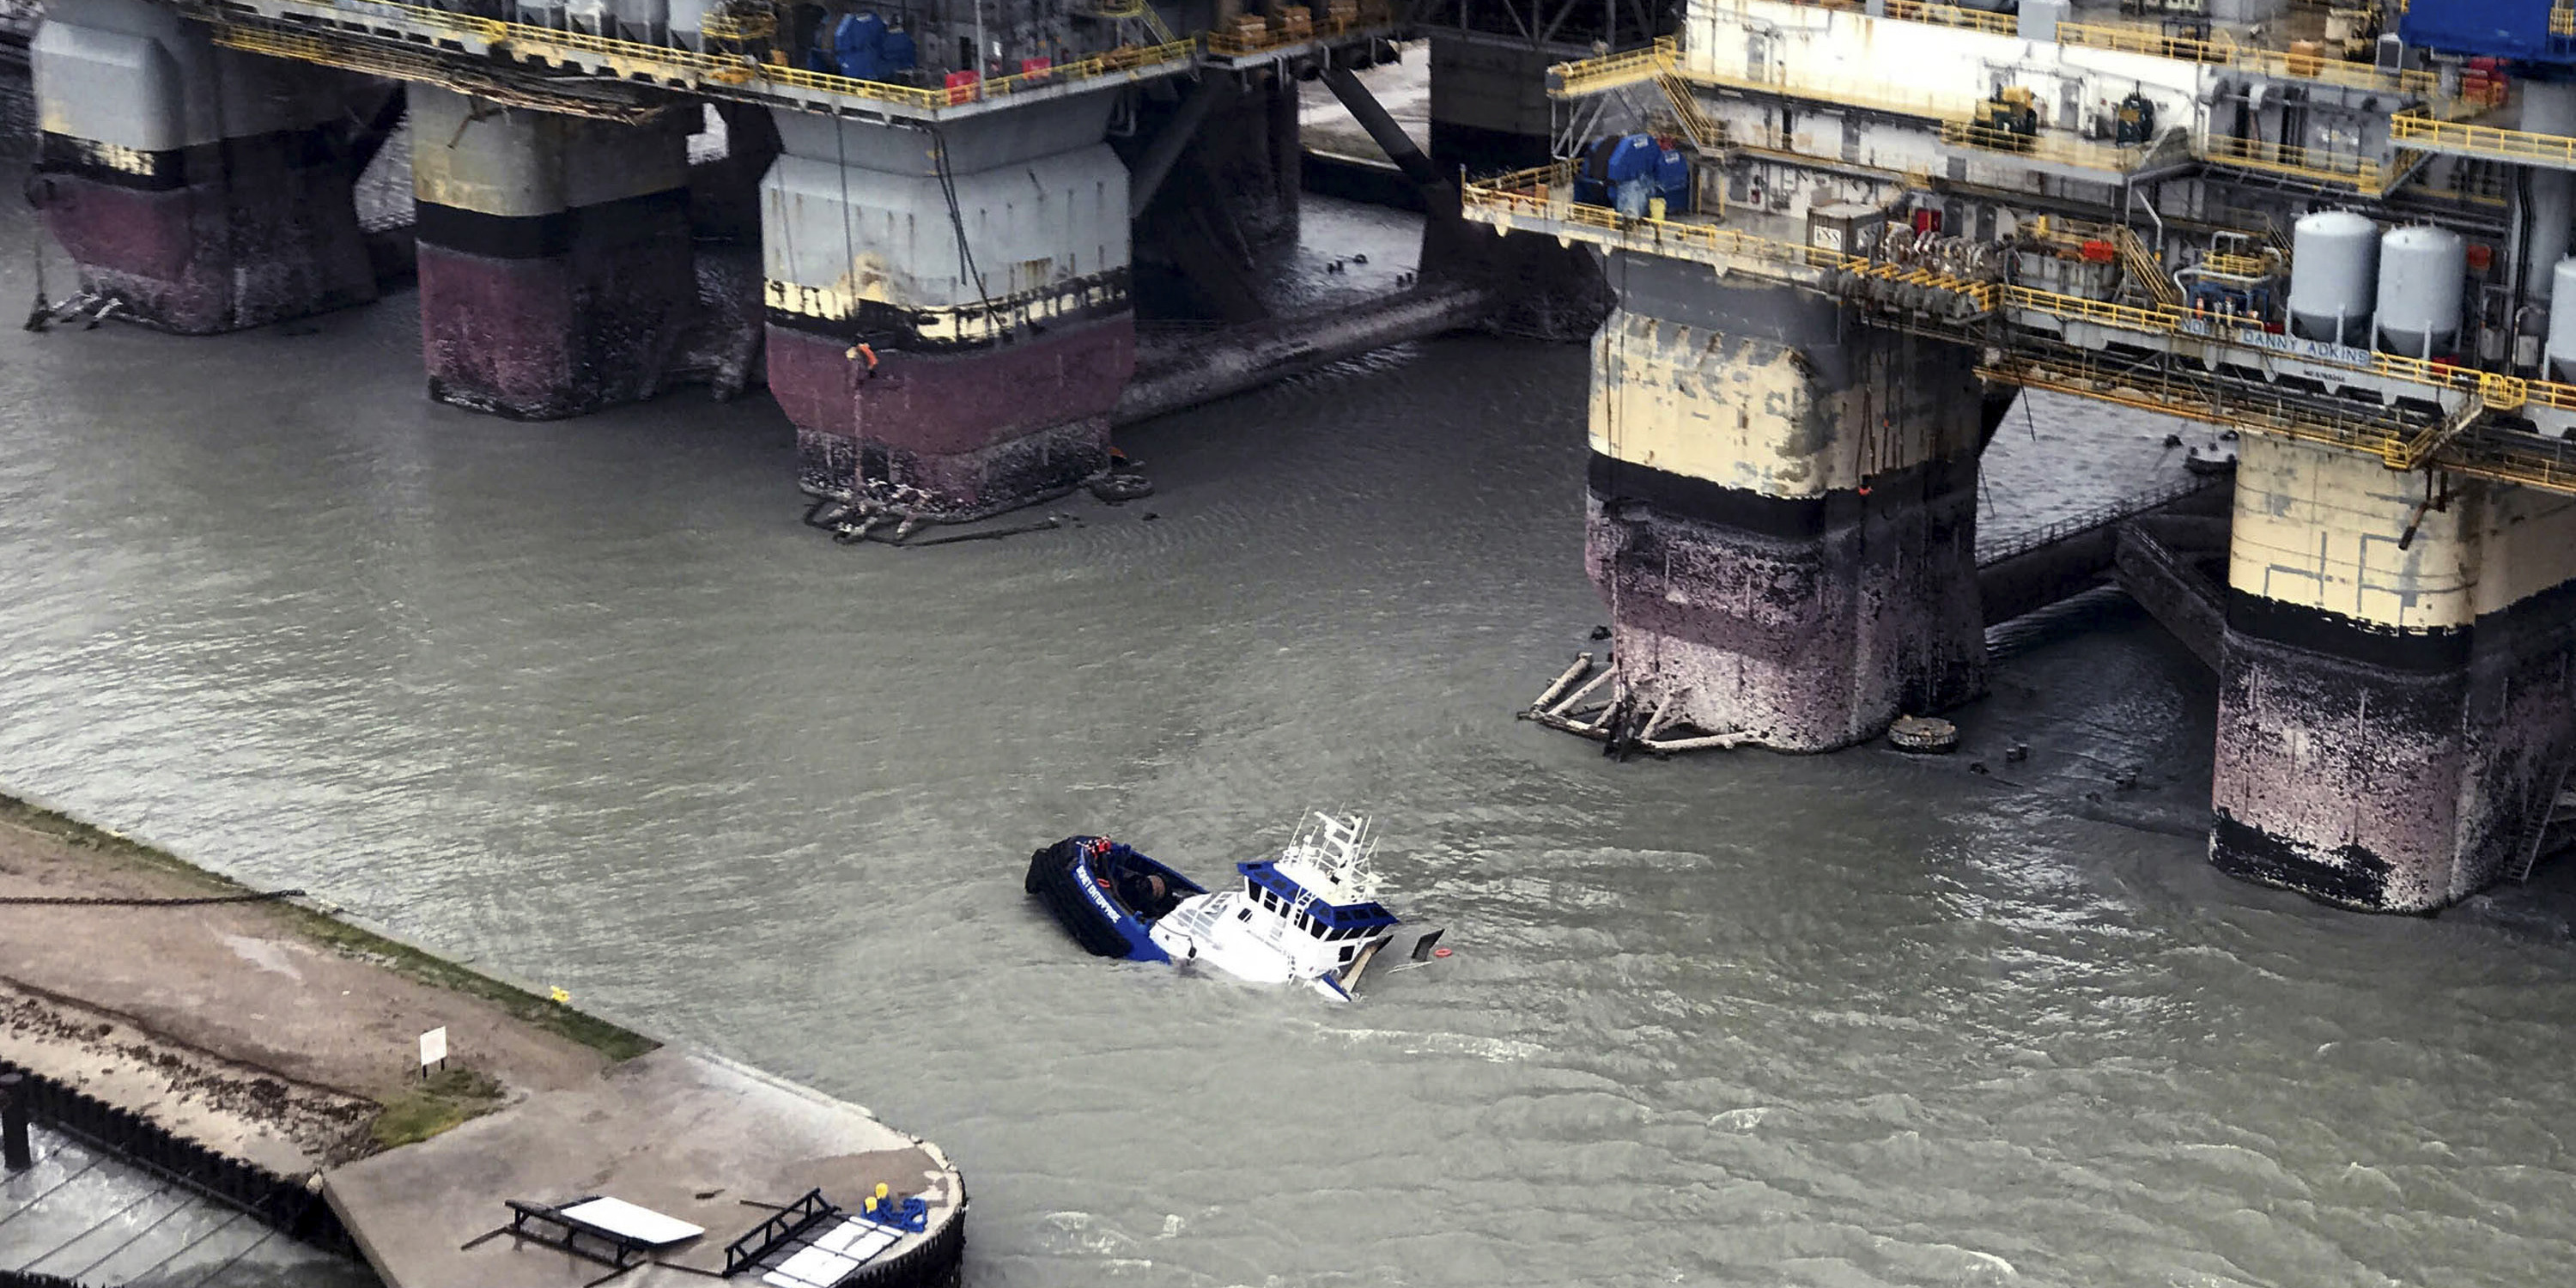 A U.S. Coast Guard handout aerial view of the tugboat Signet Enterprise with it's crew -- later rescued -- standing in the bow of the partially submerged vessel, near Port Aransas, Texas, Aug. 26, 2017. Hurricane Harvey's devastation points out a vulnerability of American oil energy: the concentration of refineries and chemical plants along a Gulf Coast that is vulnerable to bad weather. (U.S. Coast Guard via The New York Times) EDITORIAL USE ONLY